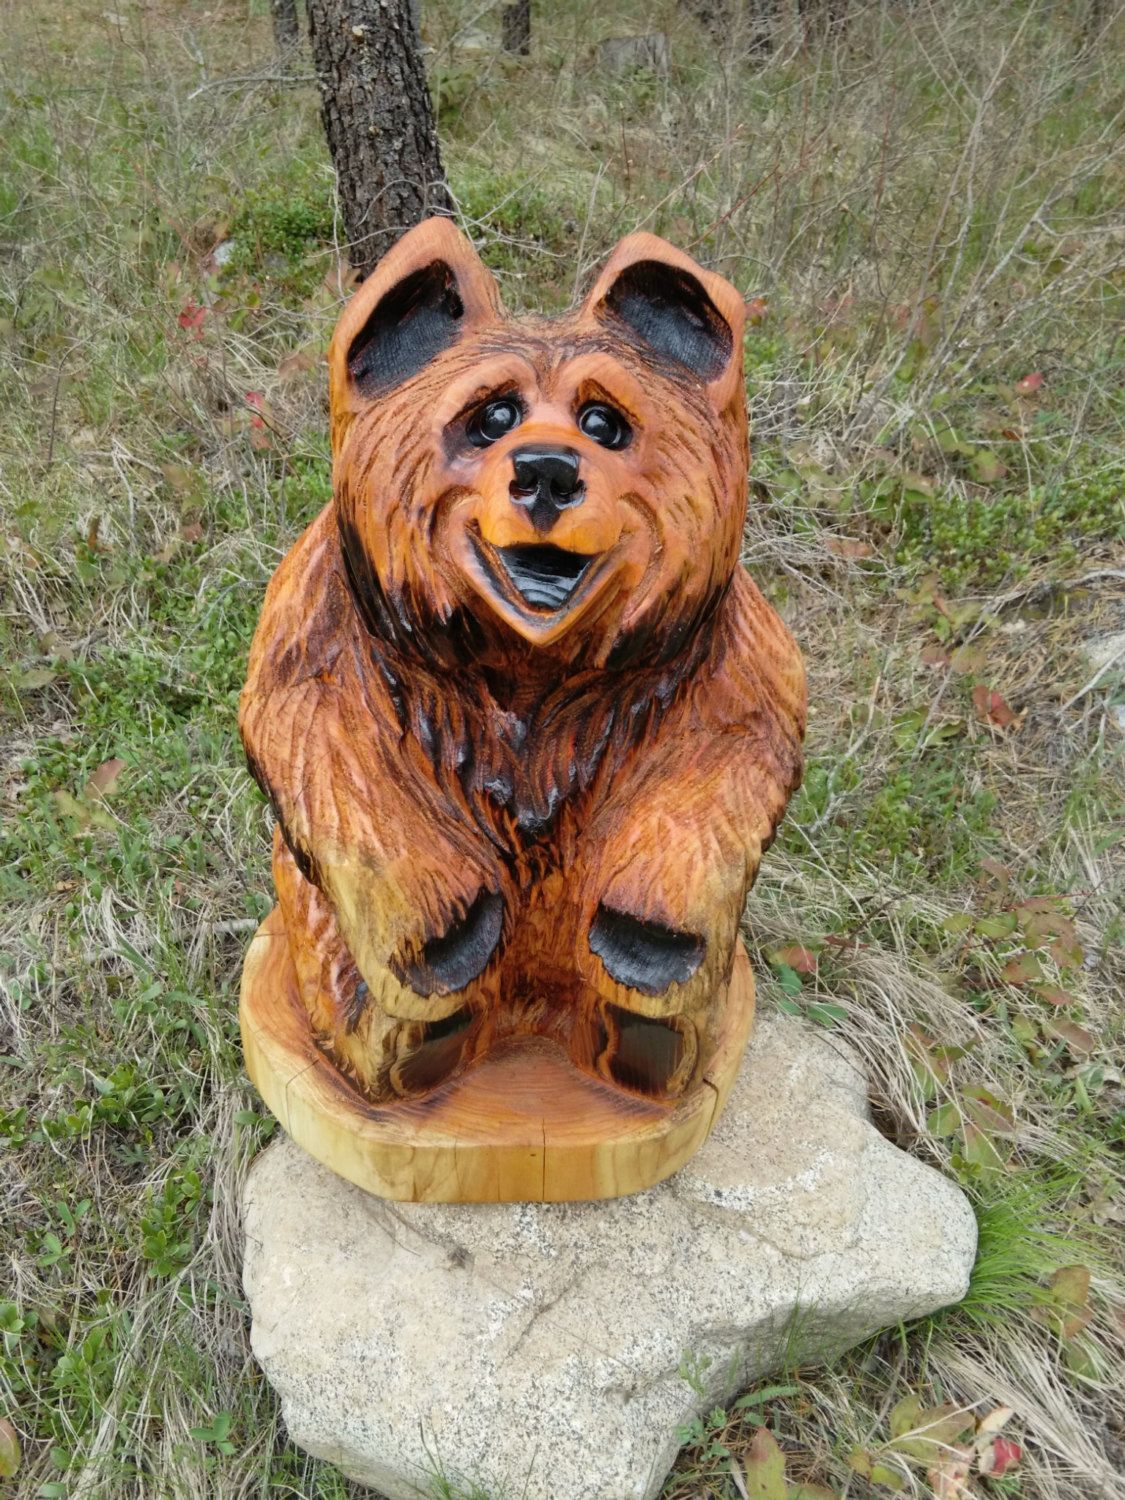 Bear carving chainsaw sculpture cub holding